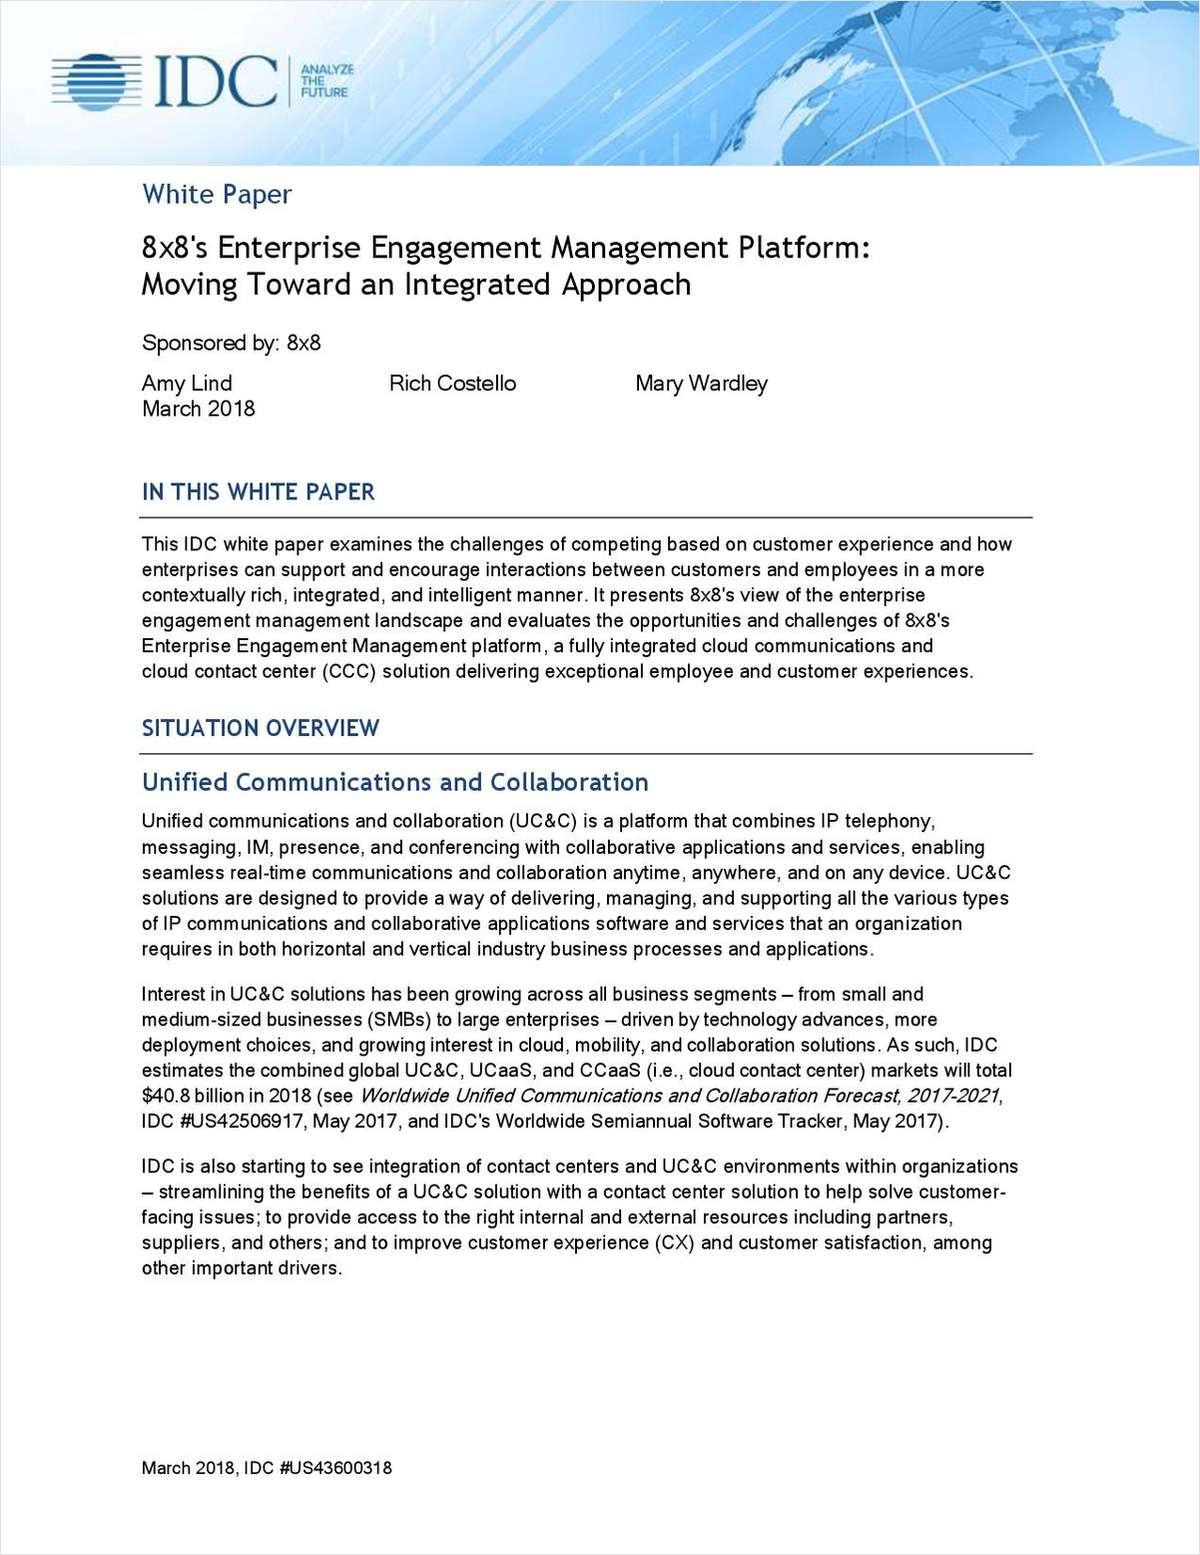 8x8's Enterprise Engagement Management Platform: Moving Toward an Integrated Approach